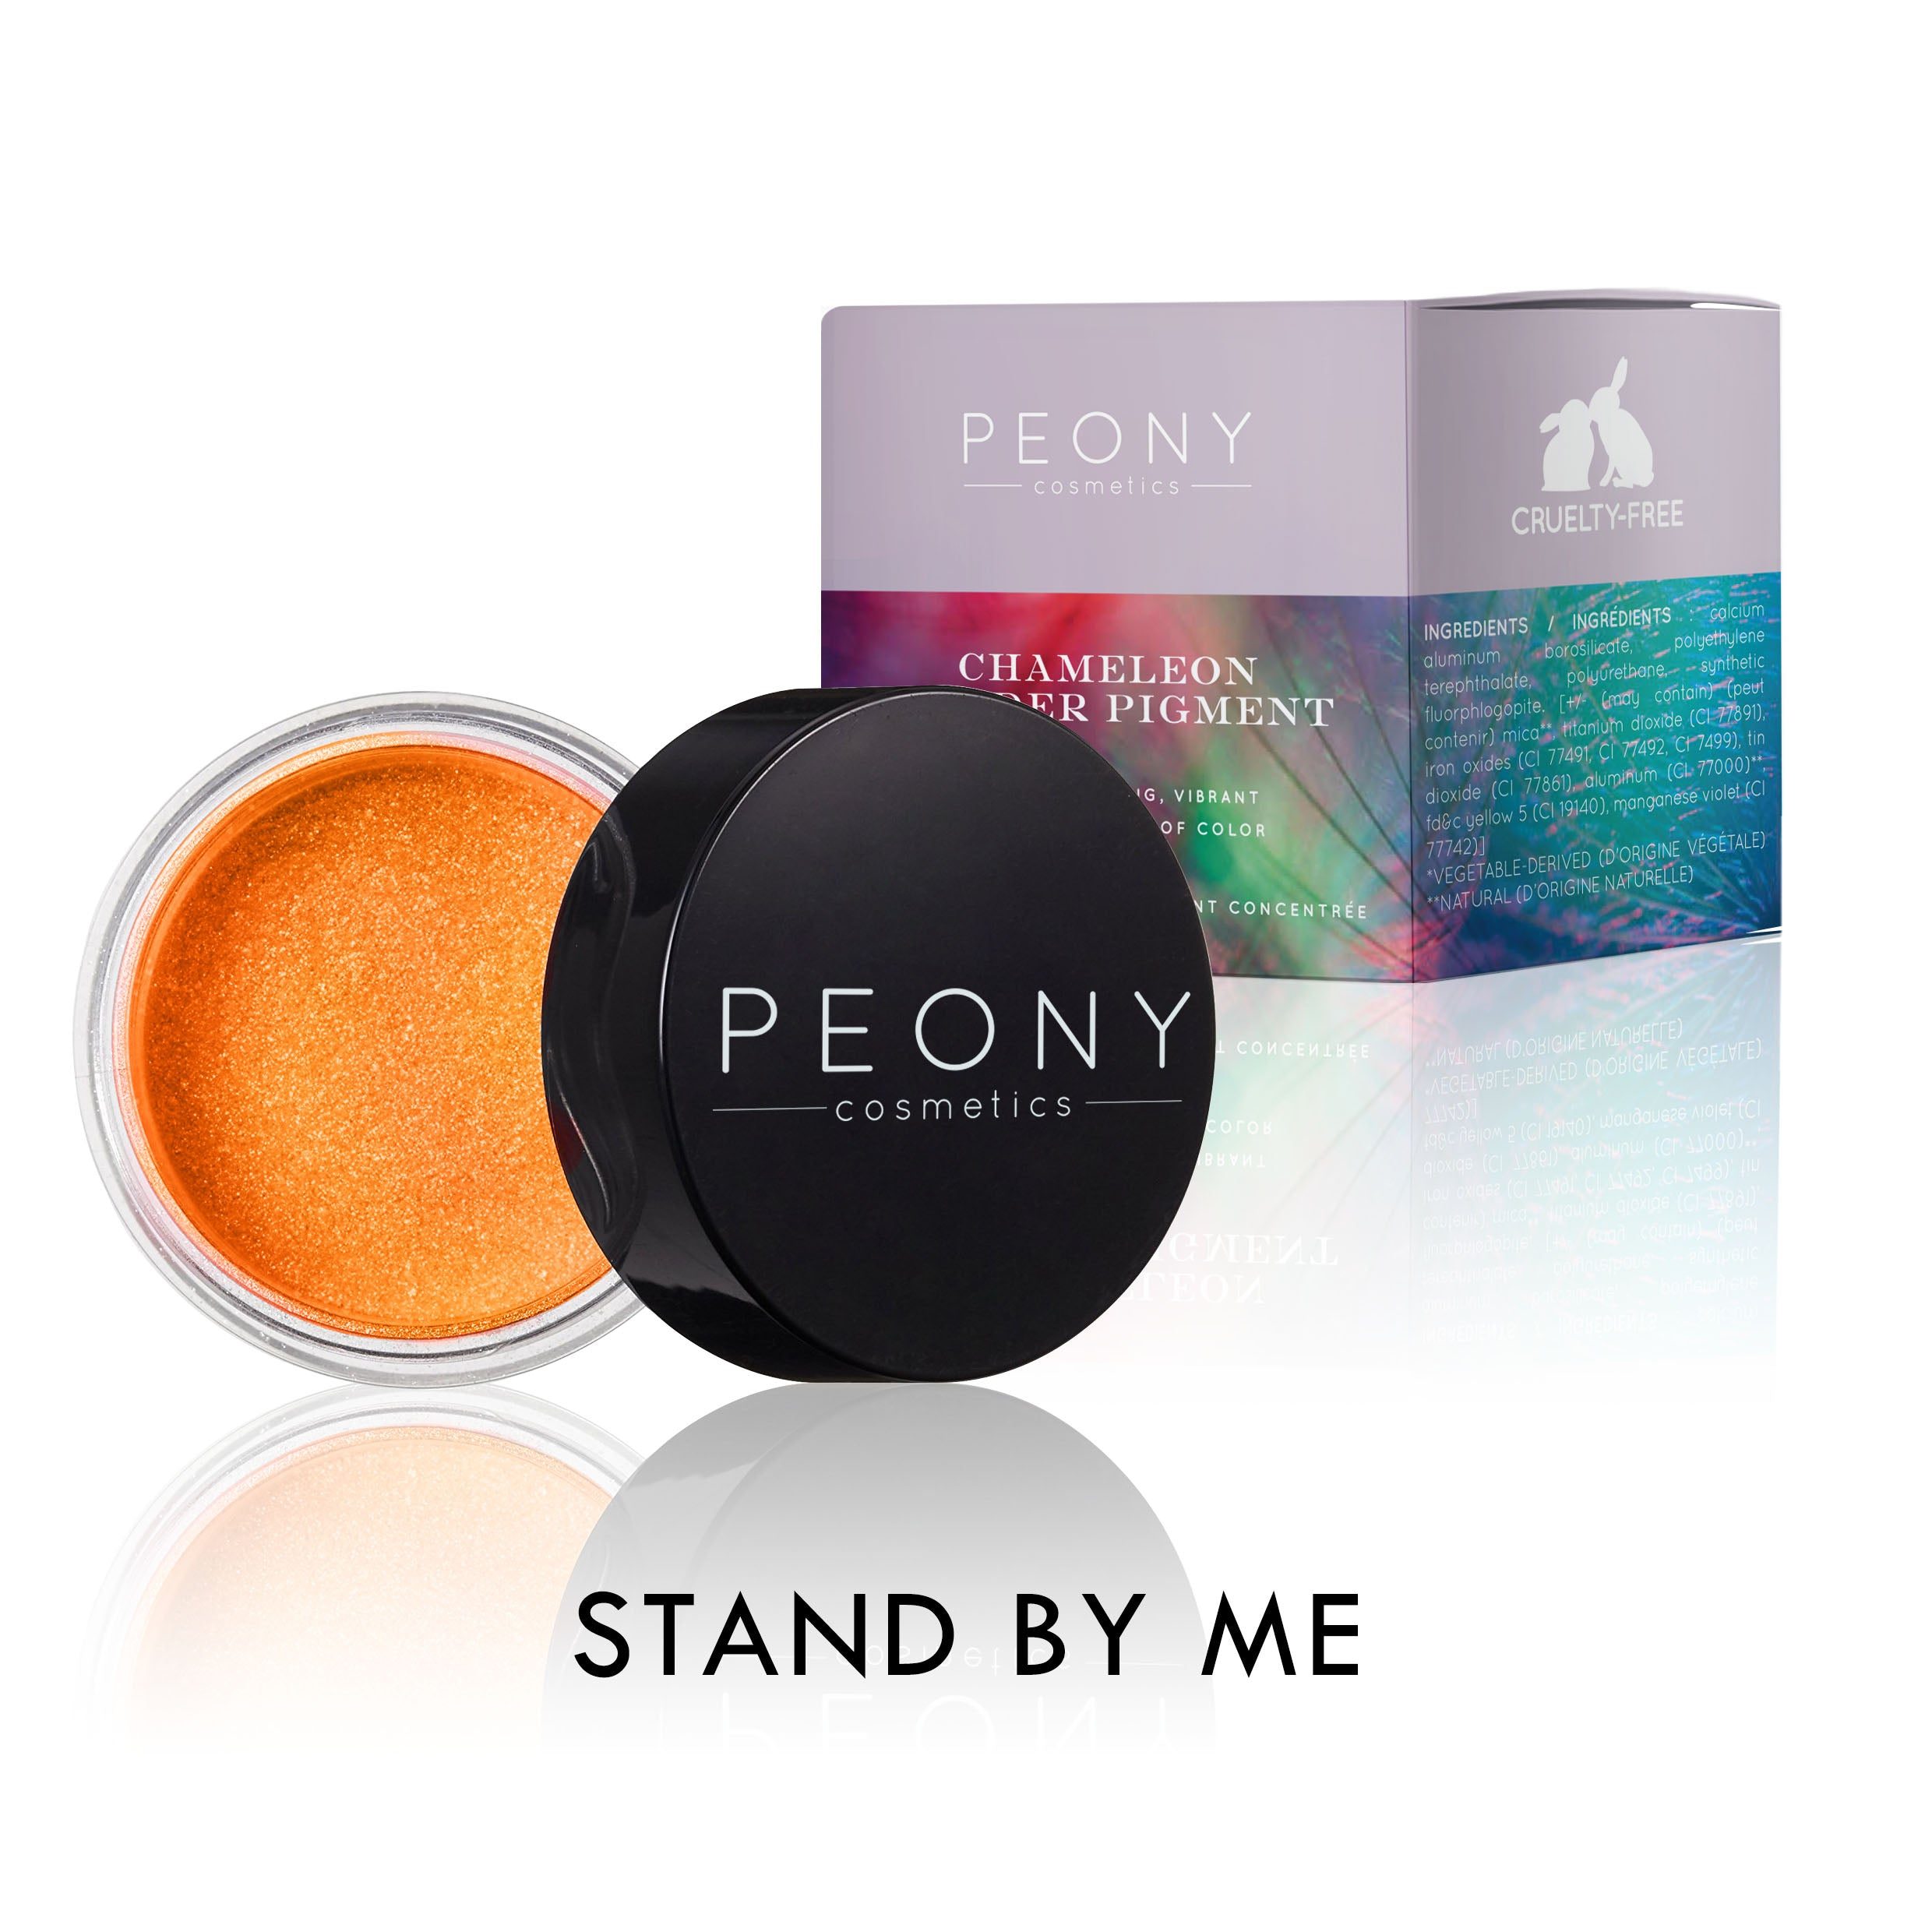 Chameleon Powder Pigment - For A Captivating, Vibrant And Intense Wash Of Color